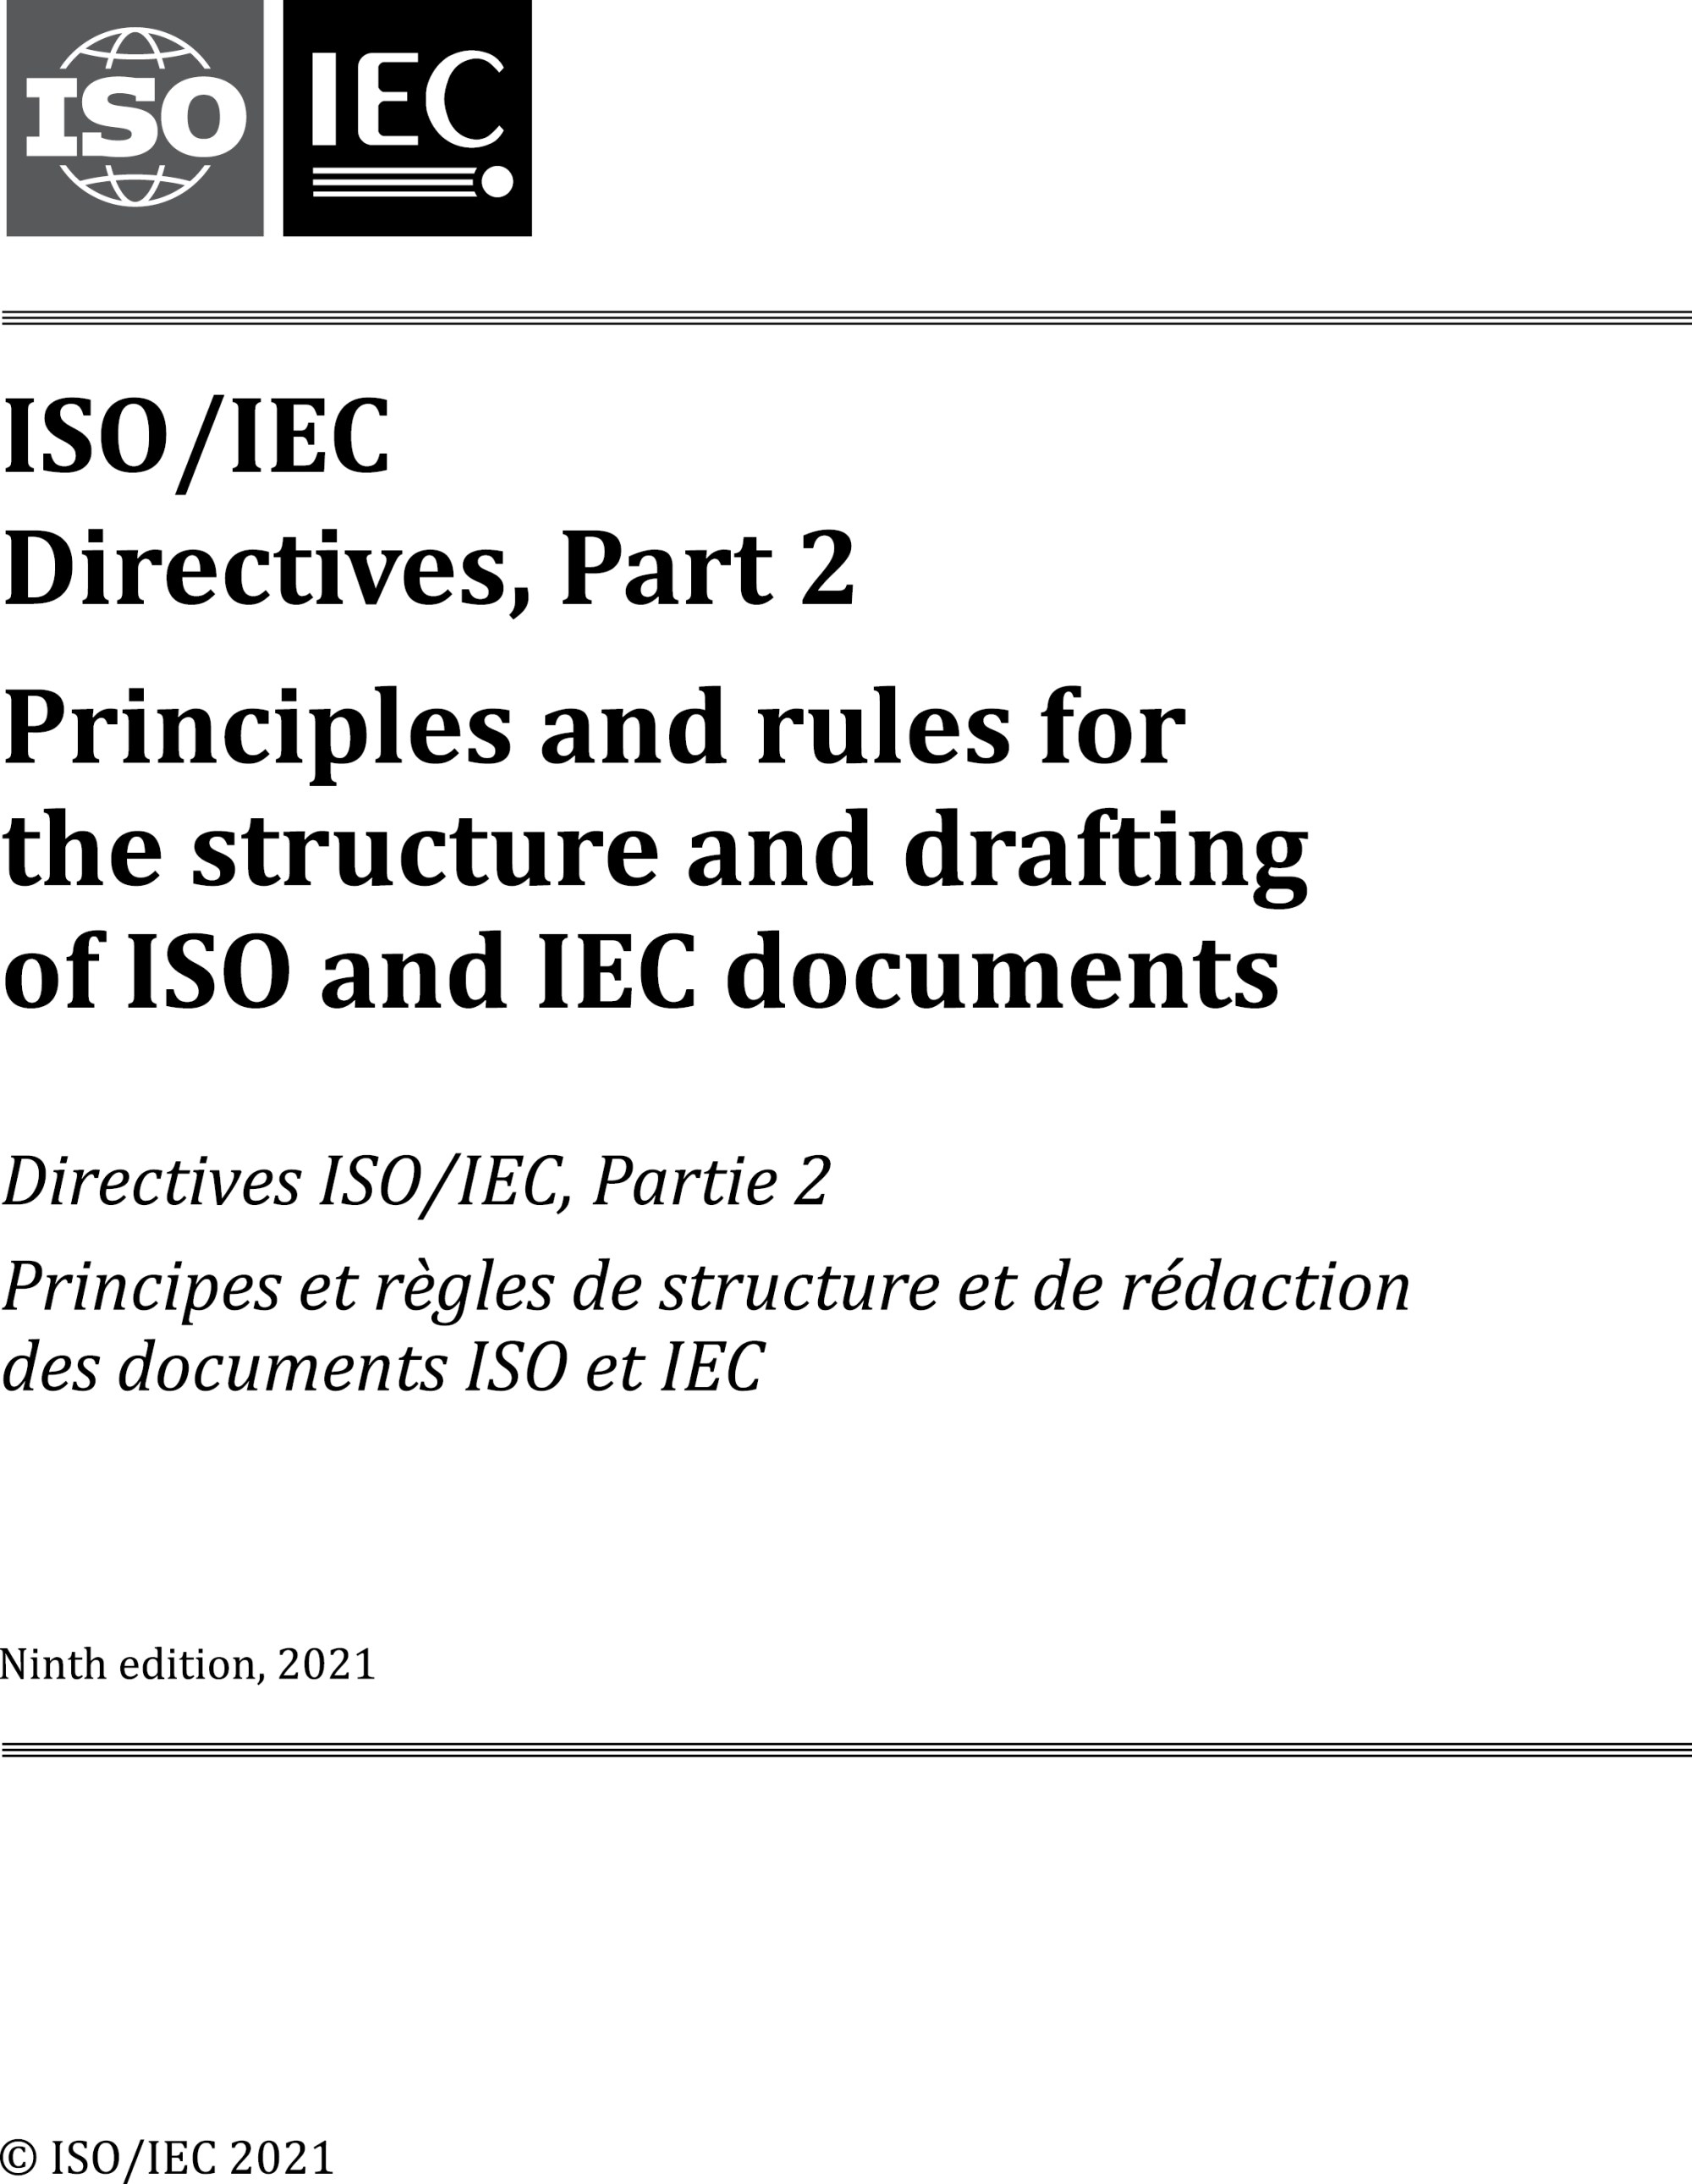 hight resolution of iso iec directives part 2 principles and rules for the structure and drafting of iso and iec documents